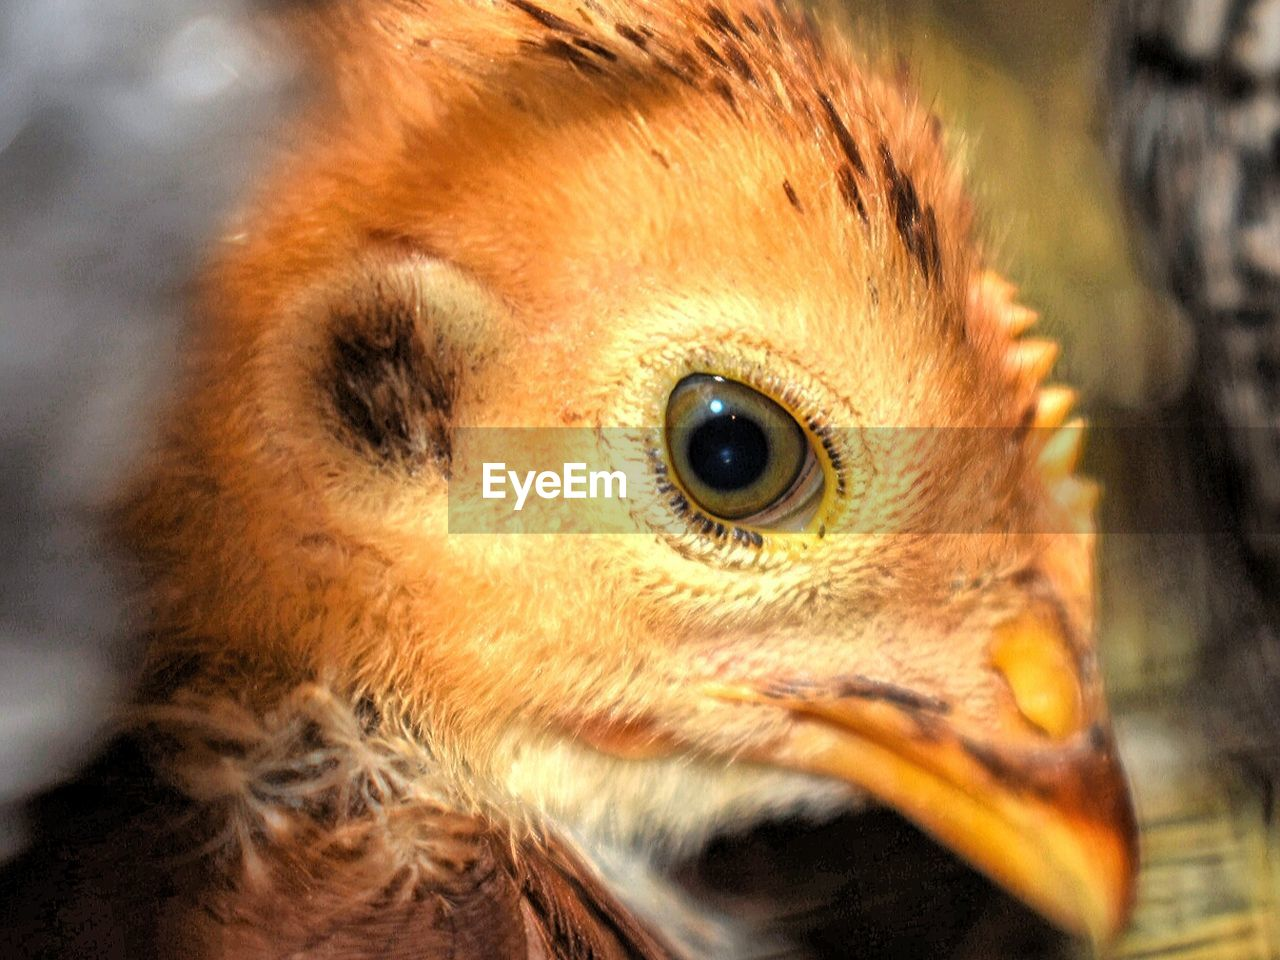 animal themes, animal, one animal, bird, vertebrate, close-up, bird of prey, animal wildlife, animals in the wild, animal body part, animal head, eye, no people, beak, focus on foreground, animal eye, day, portrait, owl, looking at camera, yellow eyes, eagle